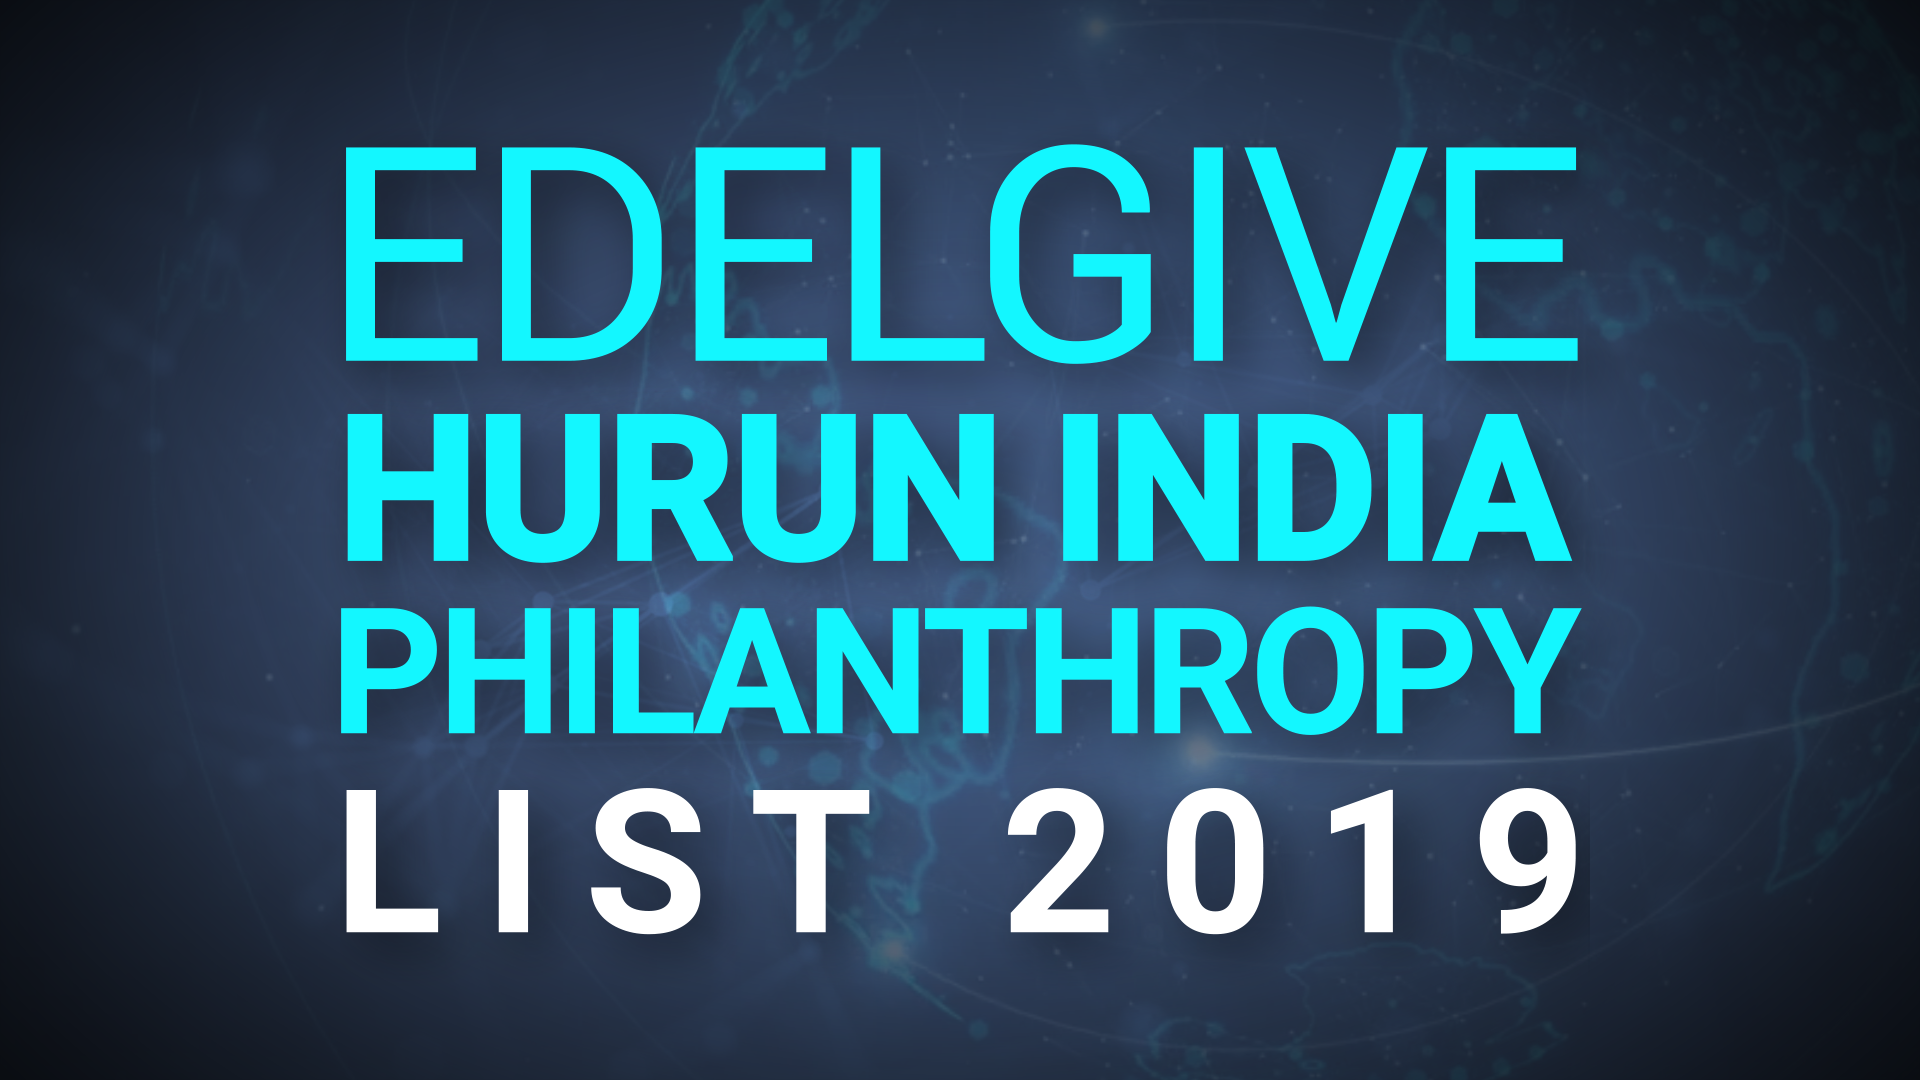 Hurun Report launches the sixth edition of EdelGive Hurun India Philanthropy List